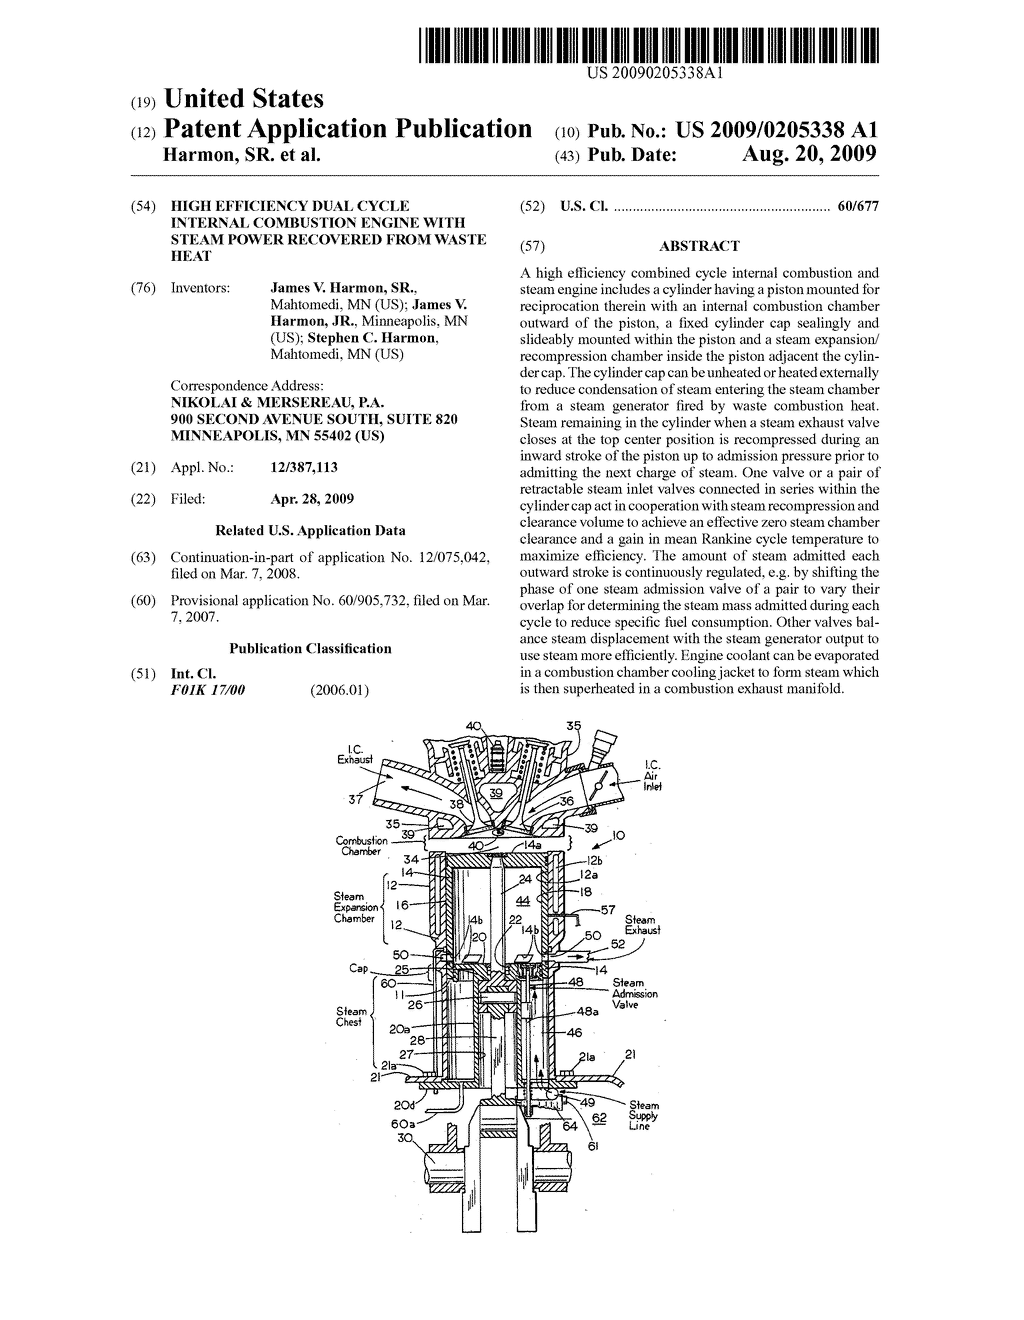 High Efficiency Dual Cycle Internal Combustion Engine With Steam Heat Diagram Power Recovered From Waste Schematic And Image 01